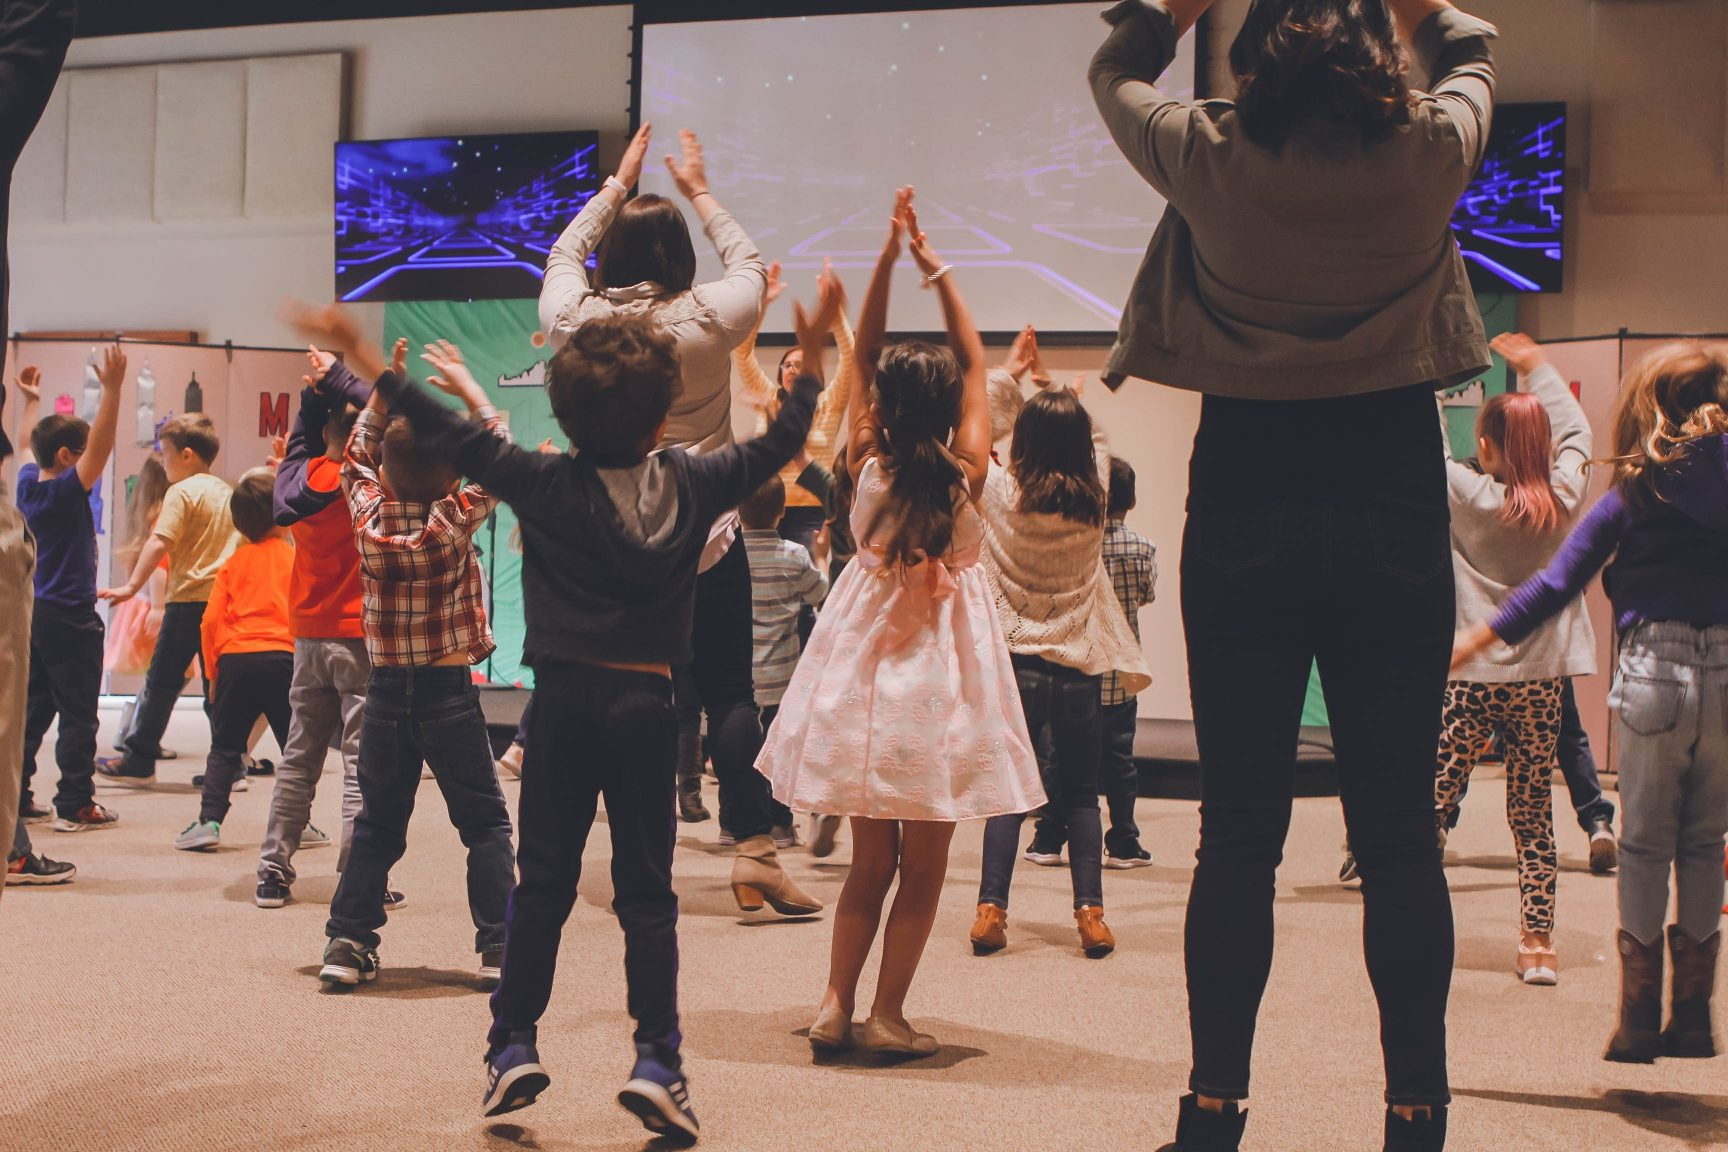 Children with their hands in the air taking part in a group activity.